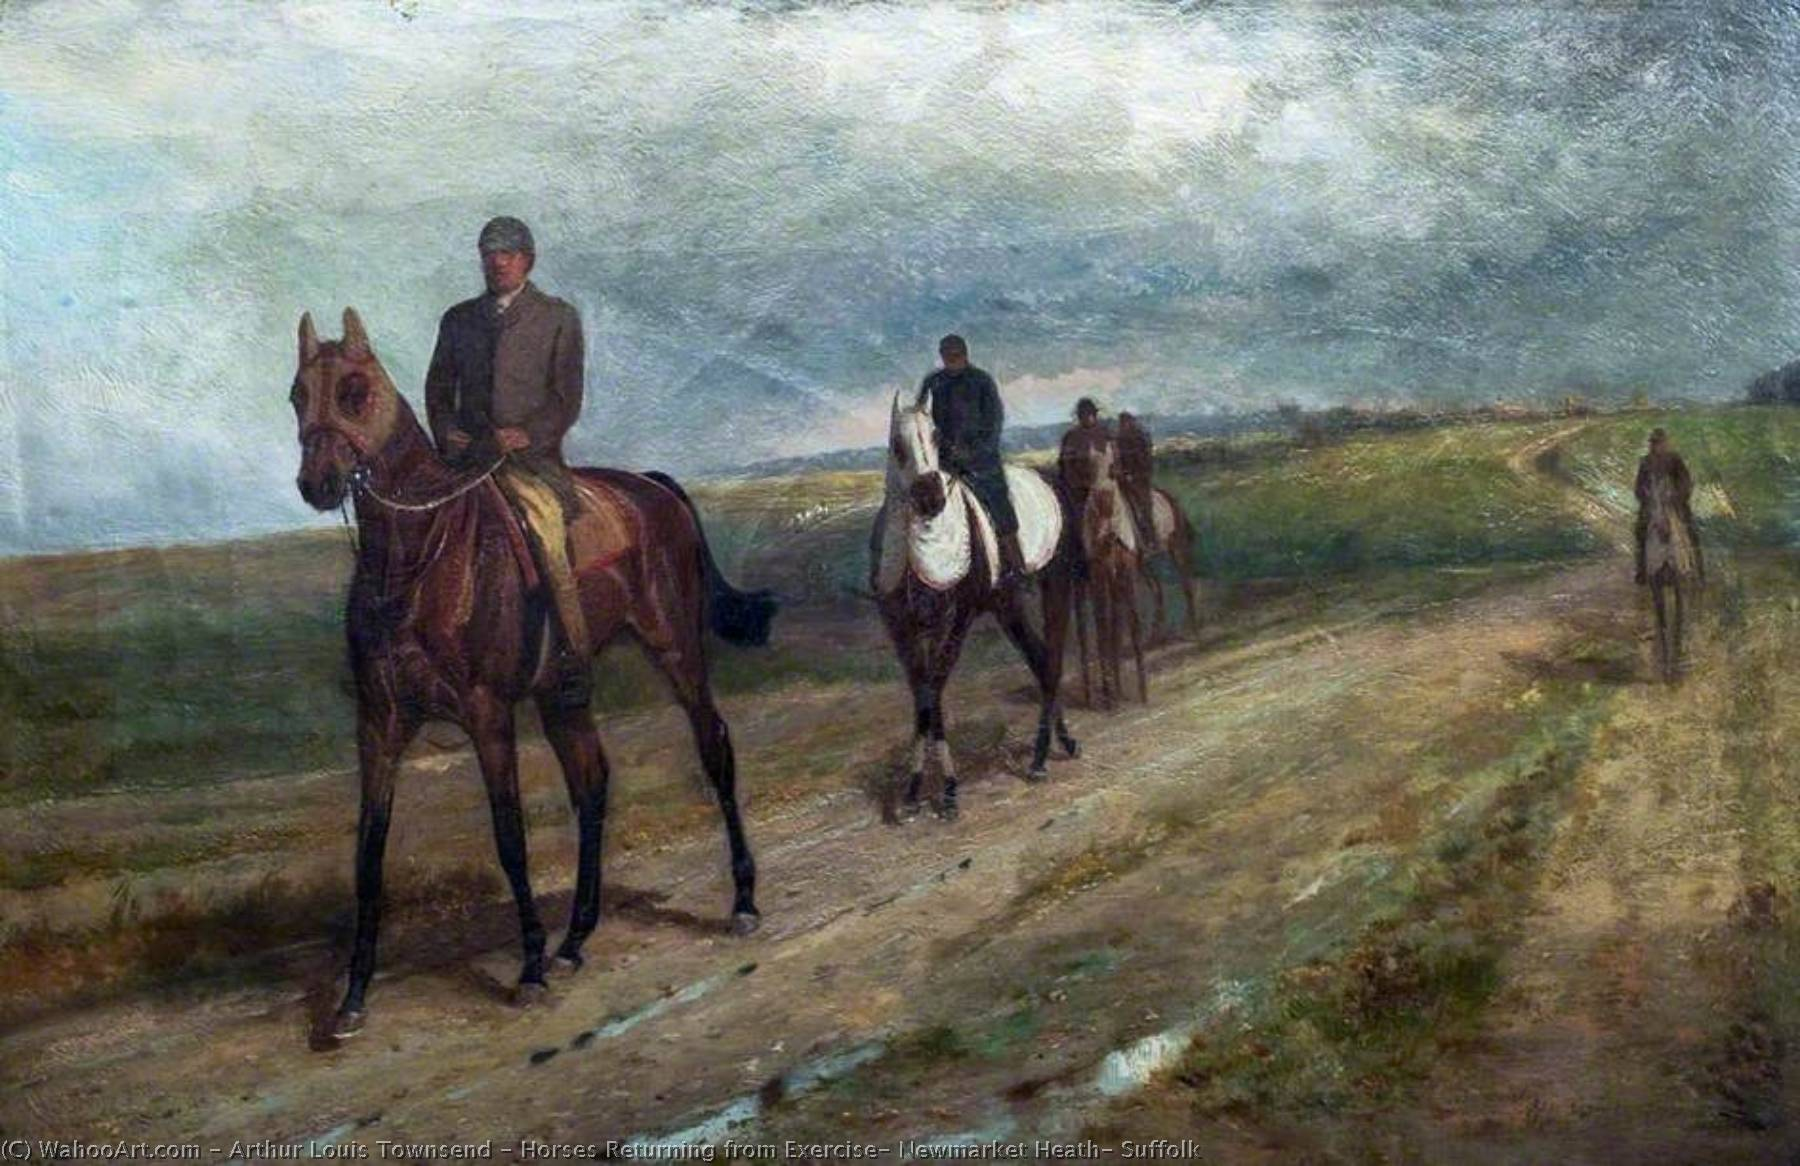 Horses Returning from Exercise, Newmarket Heath, Suffolk, 1886 by Arthur Louis Townsend | Oil Painting | WahooArt.com